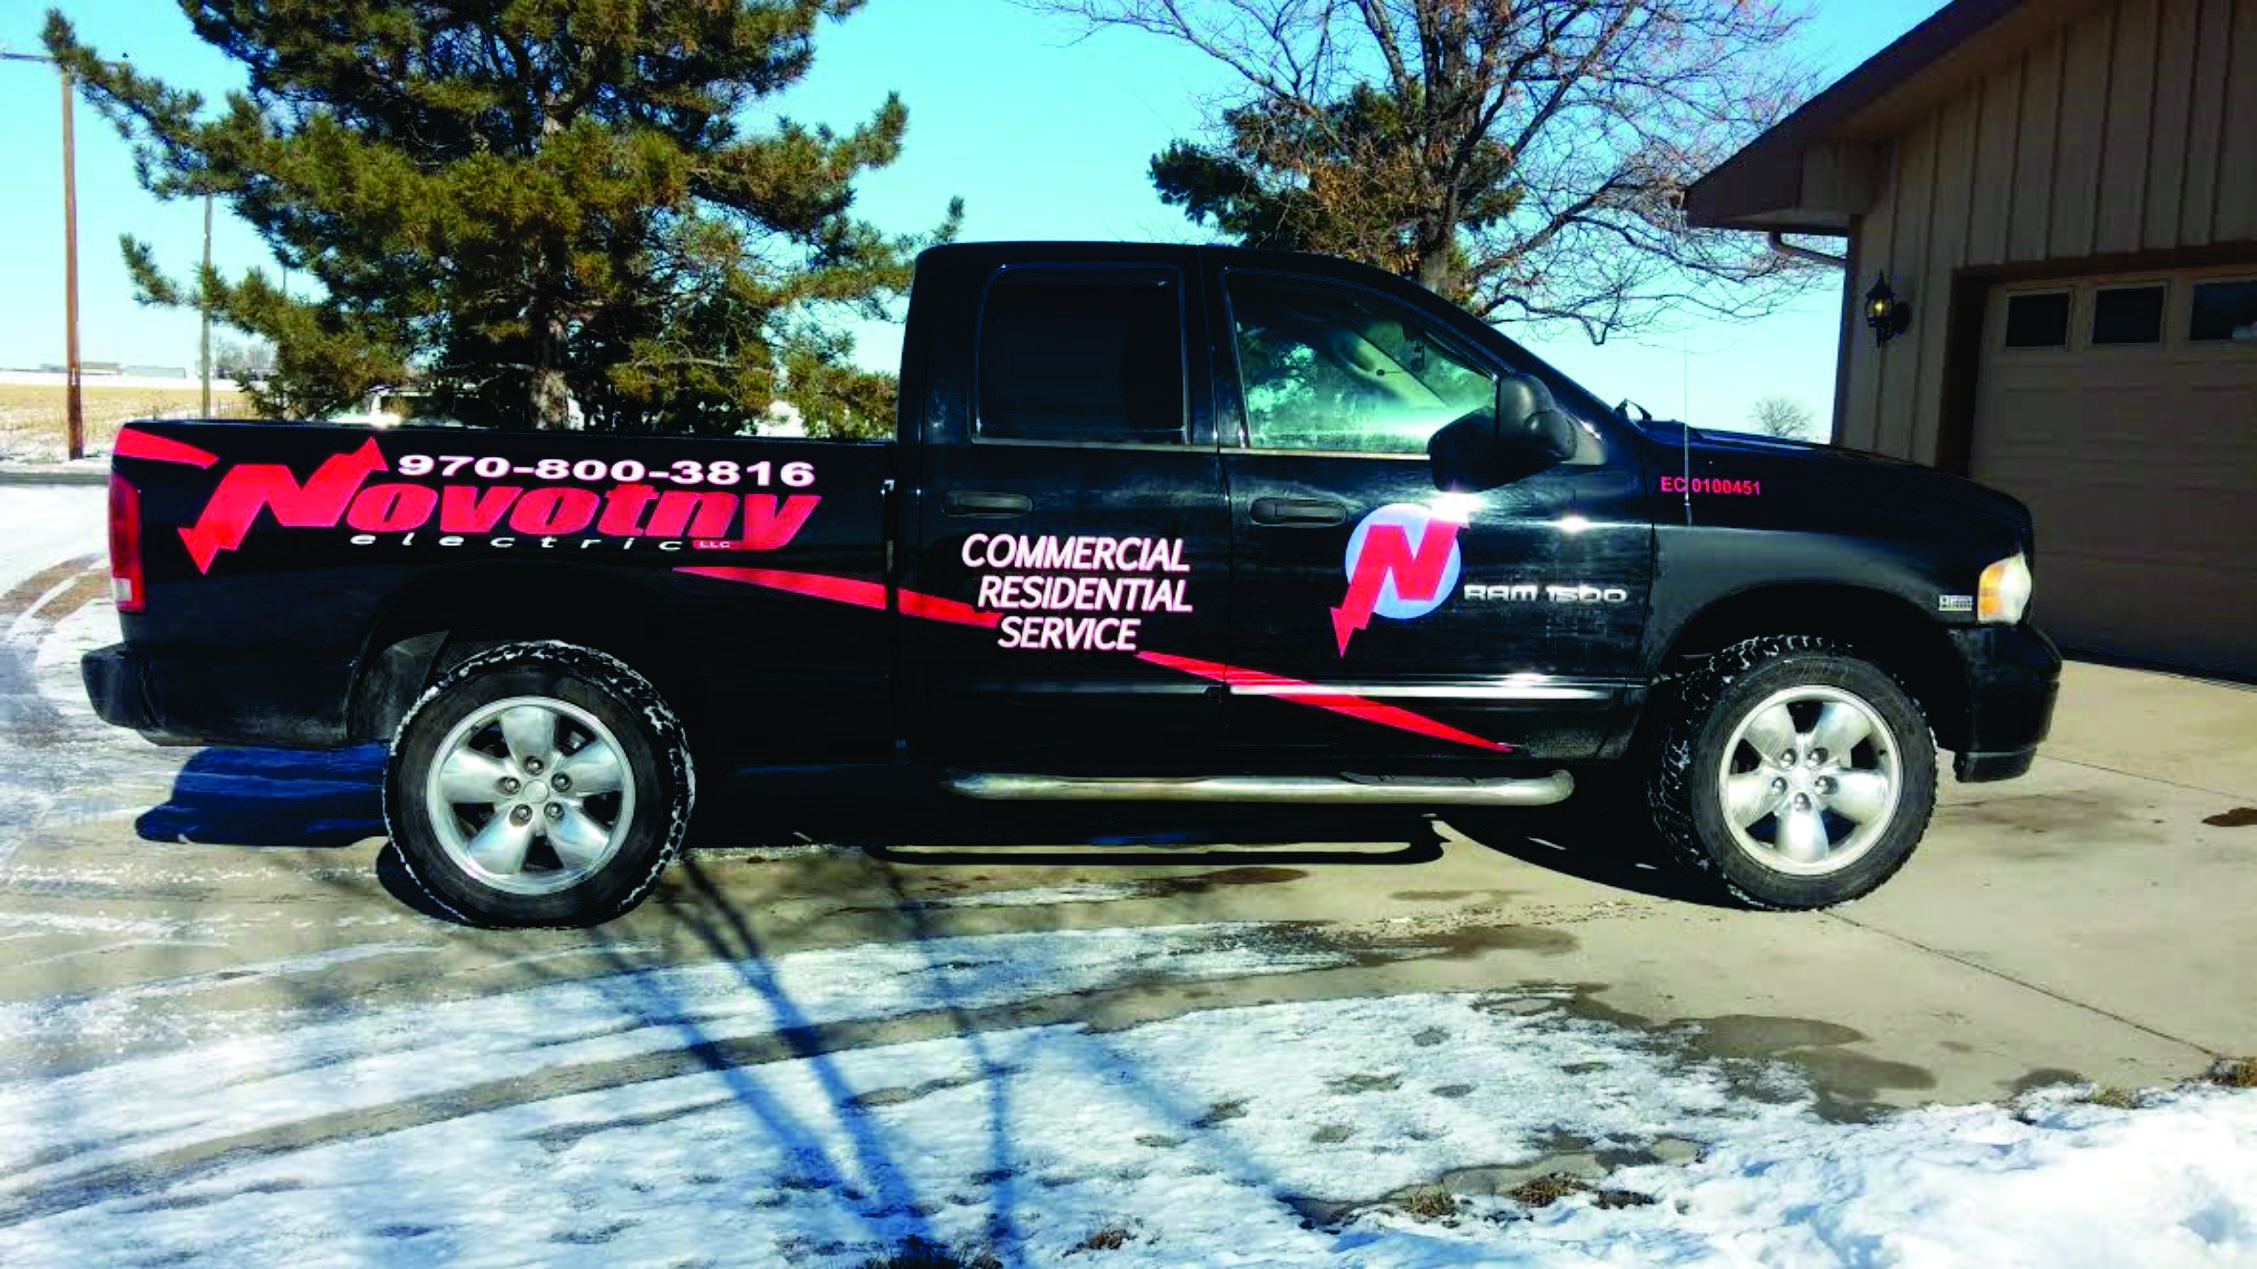 Contractor Wrap Graphics